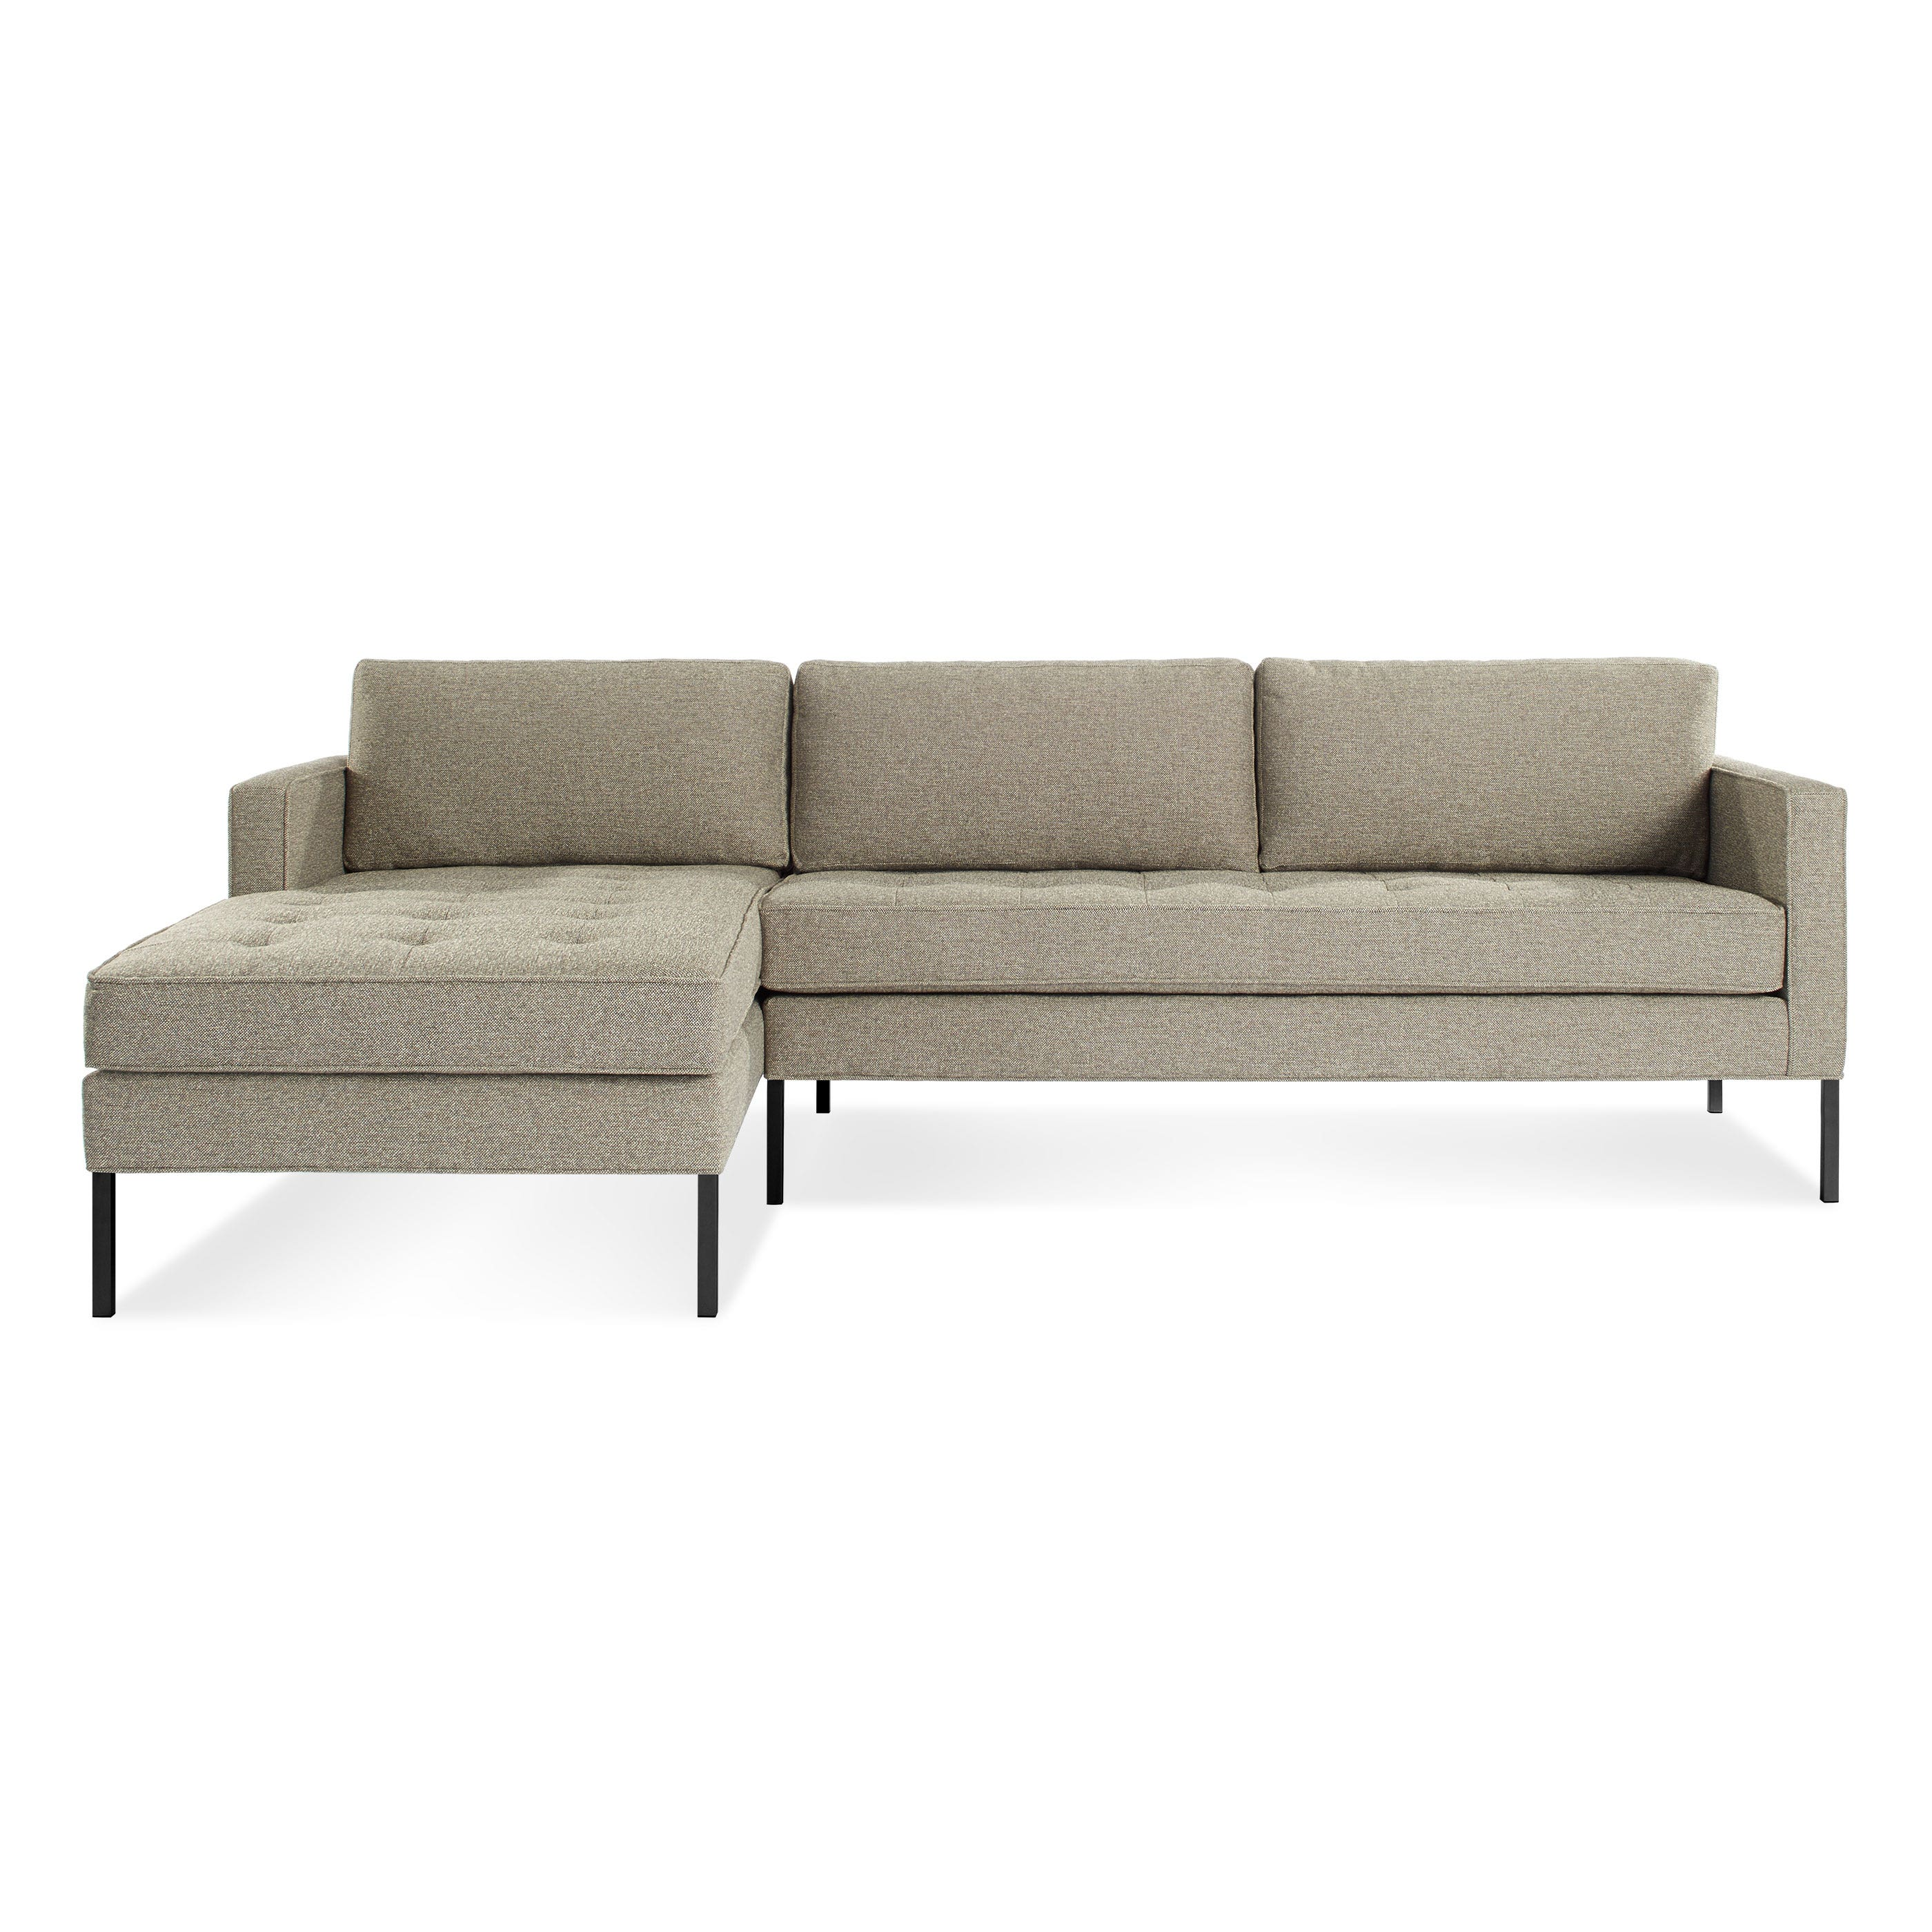 Modern chaise sofa - Previous Image Paramount Modern Right Chaise Sectional